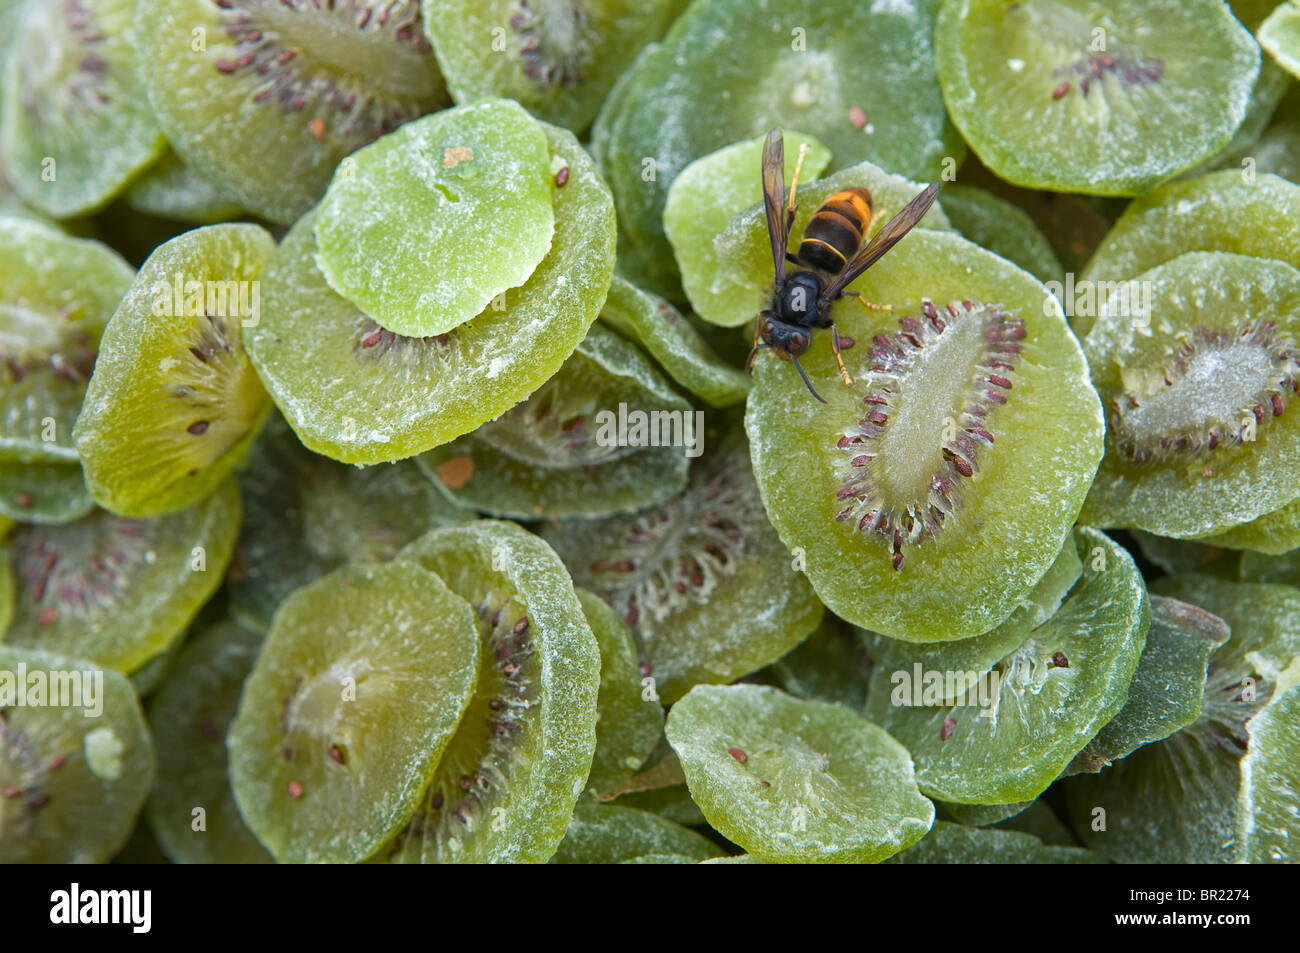 A honey bee enjoys candied and dried kiwi at roadside vegetable stand, Sichuan Province, China - Stock Image